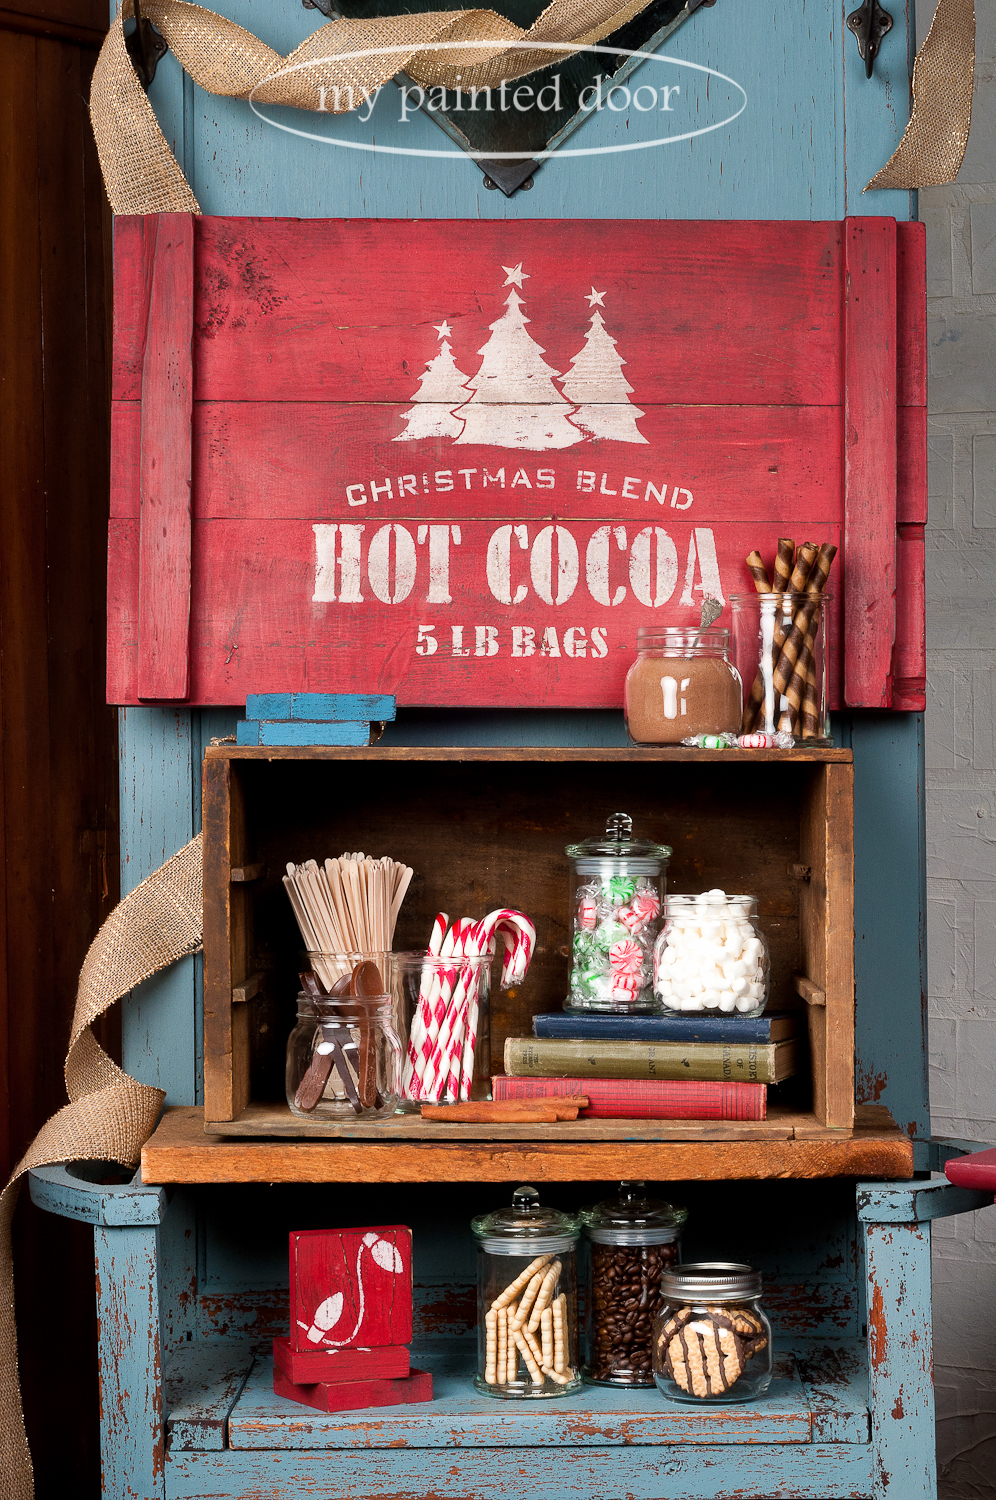 My Painted Door is offering Christmas Sign Workshops using Miss Mustard Seed's Milk Paint. You can easily create this Hot Cocoa sign! Our workshops will teach you tons of tips and techniques on how to take new wood and create an authentic looking vintage sign by distressing, layering colours and more.